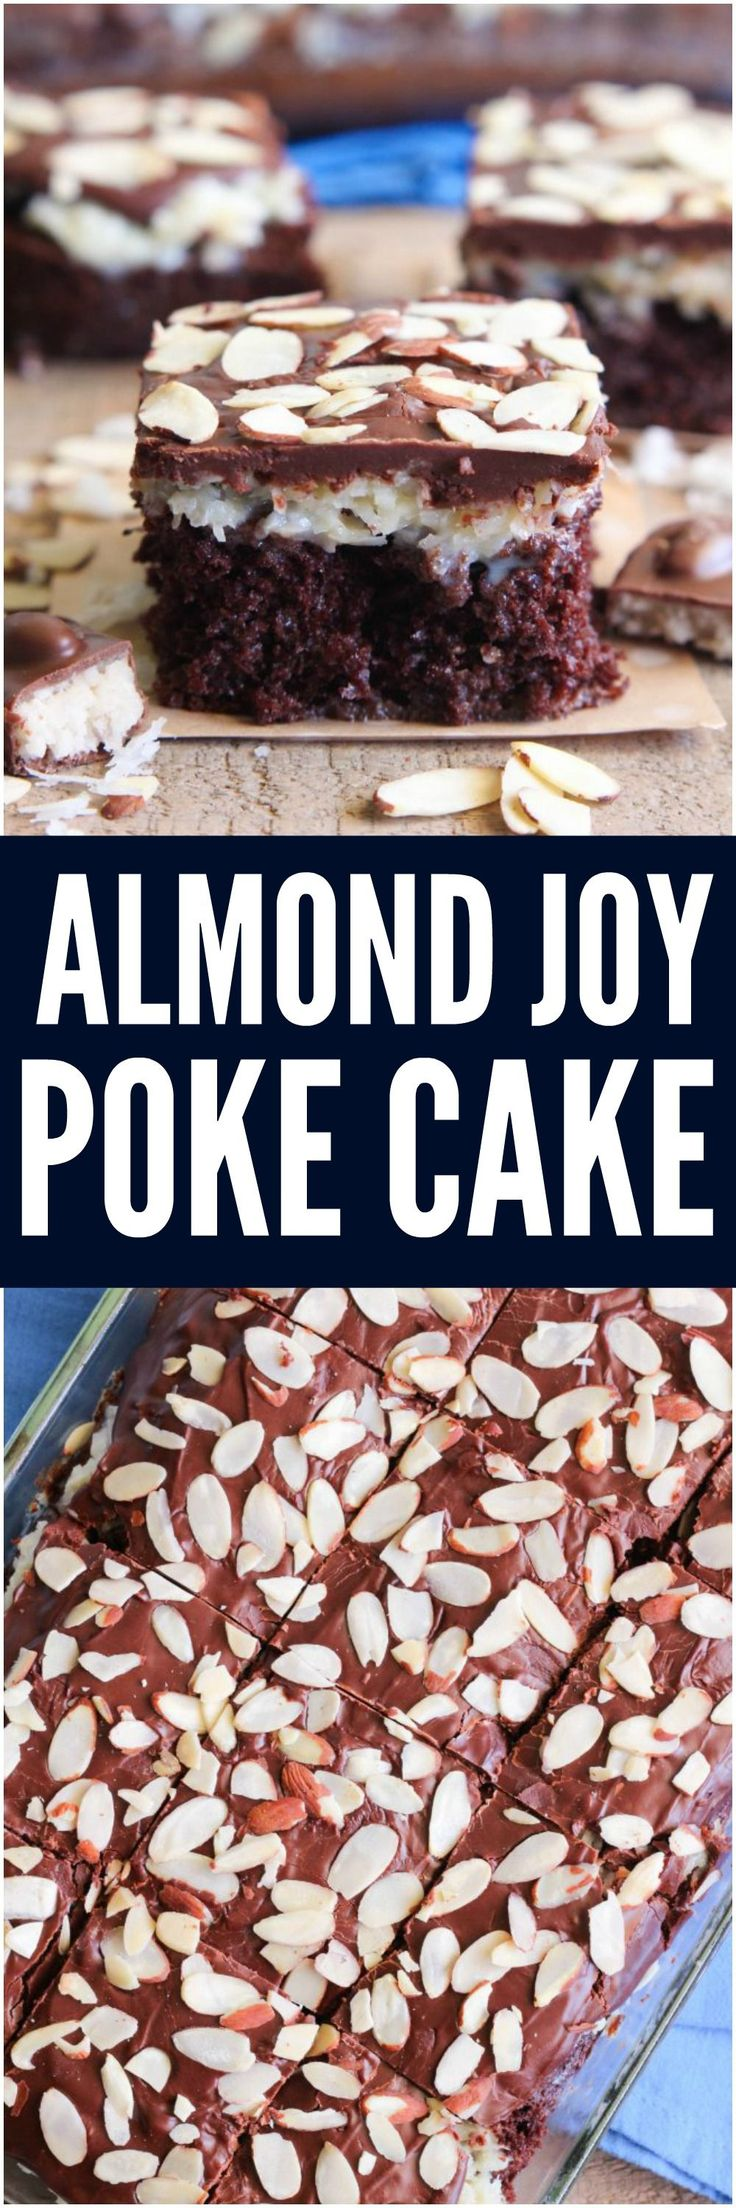 Almond Joy Poke Cake has all of the things that you love about an almond joy candy bar turned into a decadent cake! This cake is irresistible and will satisfy your chocolate craving!